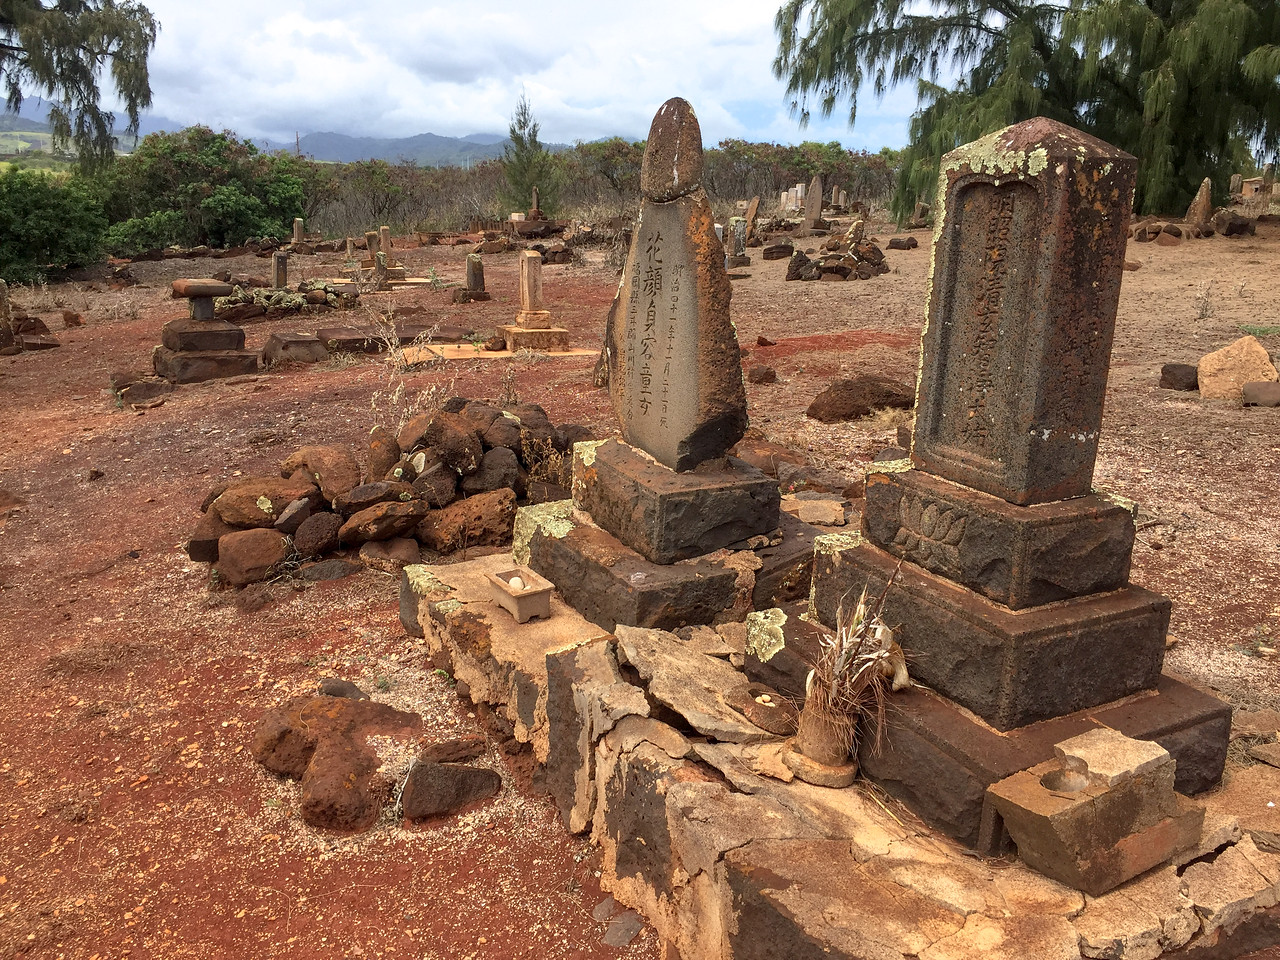 Hawaii 2017; Kauai. Japanese and Chinese section of the 100+ year old McBryde Plantation Cemetery next to Glass Beach in Port Allen